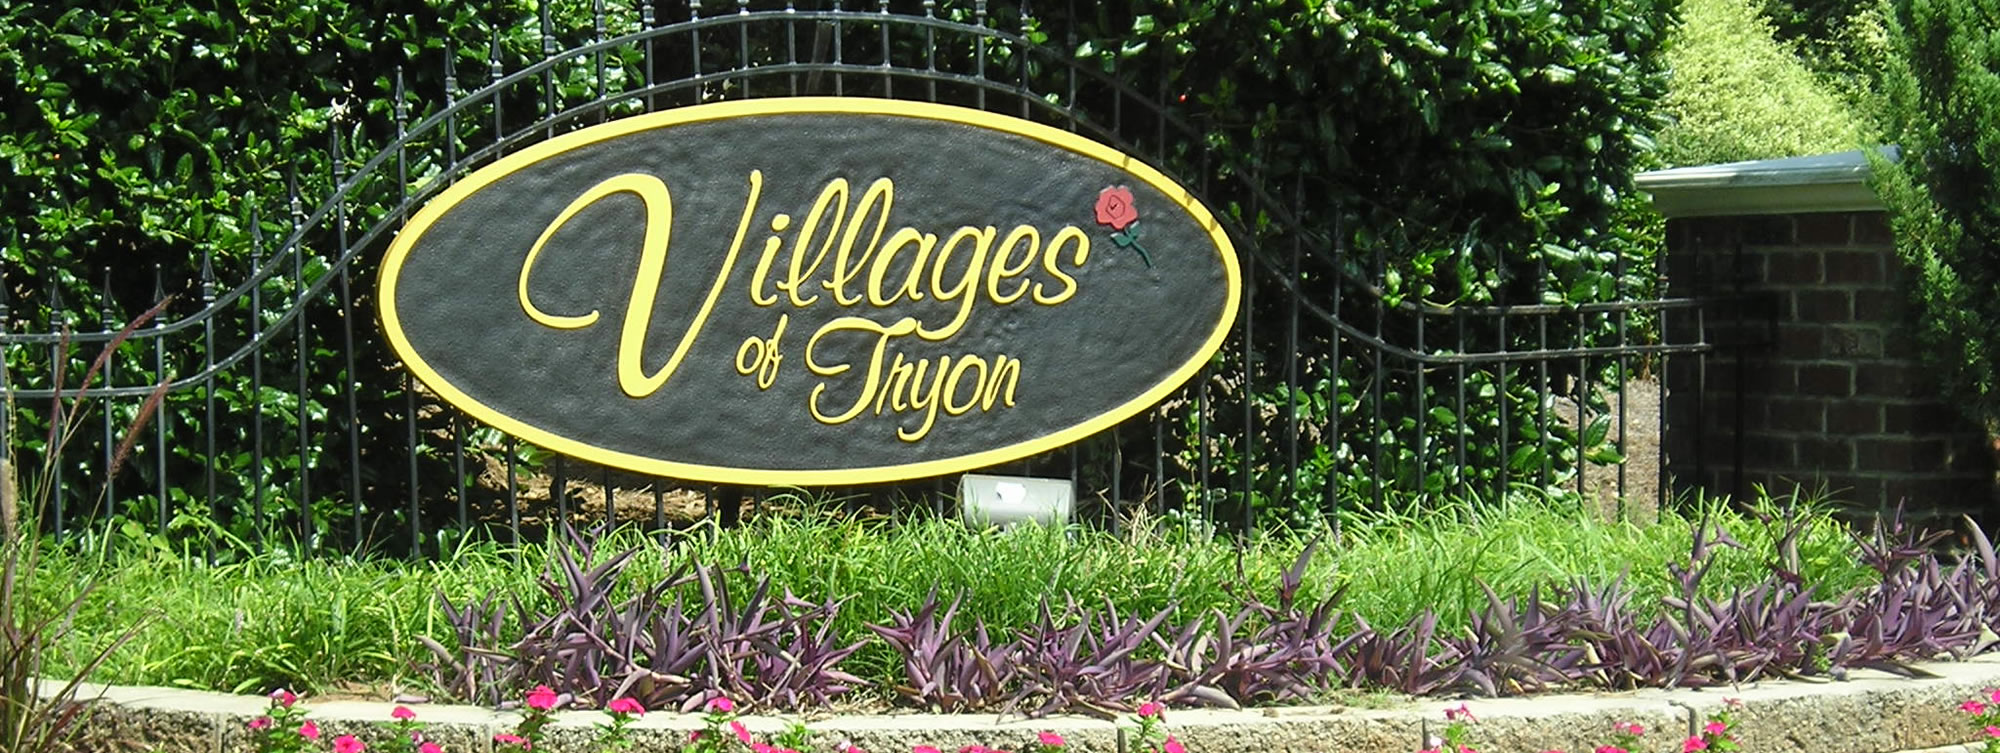 tryon singles New single-family homes starting from the $340's available in tryon at wake forest, a charming family-oriented community just 15 minutes from raleigh or durham and offering the perfect mix.